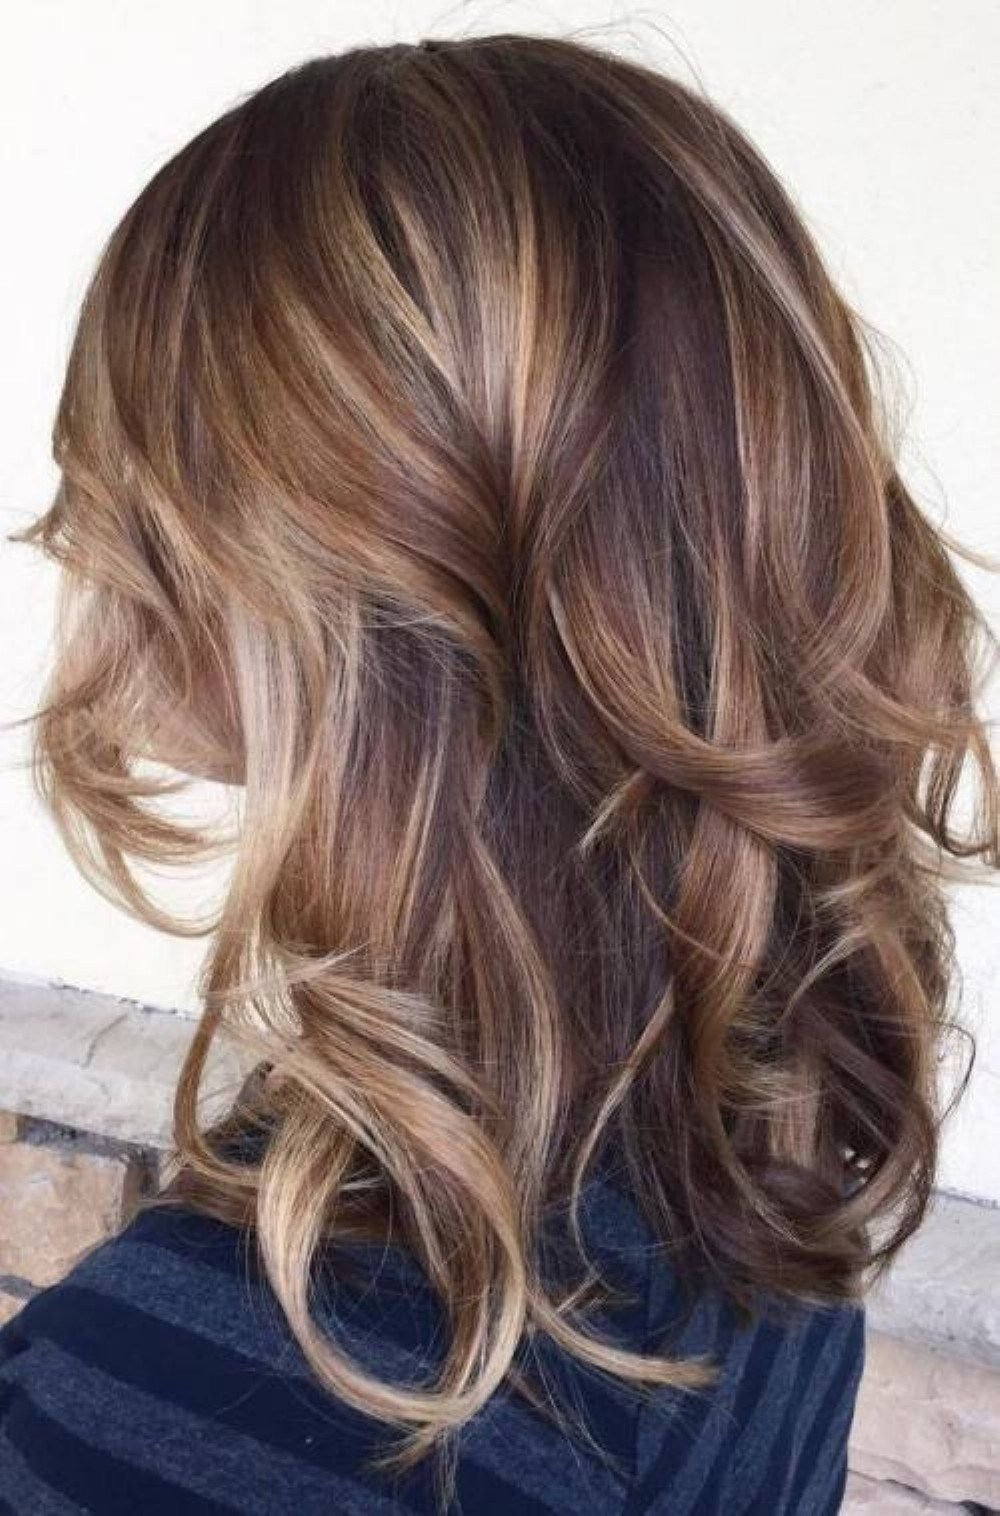 10 Perfect Blonde And Brown Hair Color Ideas top brunette hair color ideas to try 2017 9 hair pinterest 2020